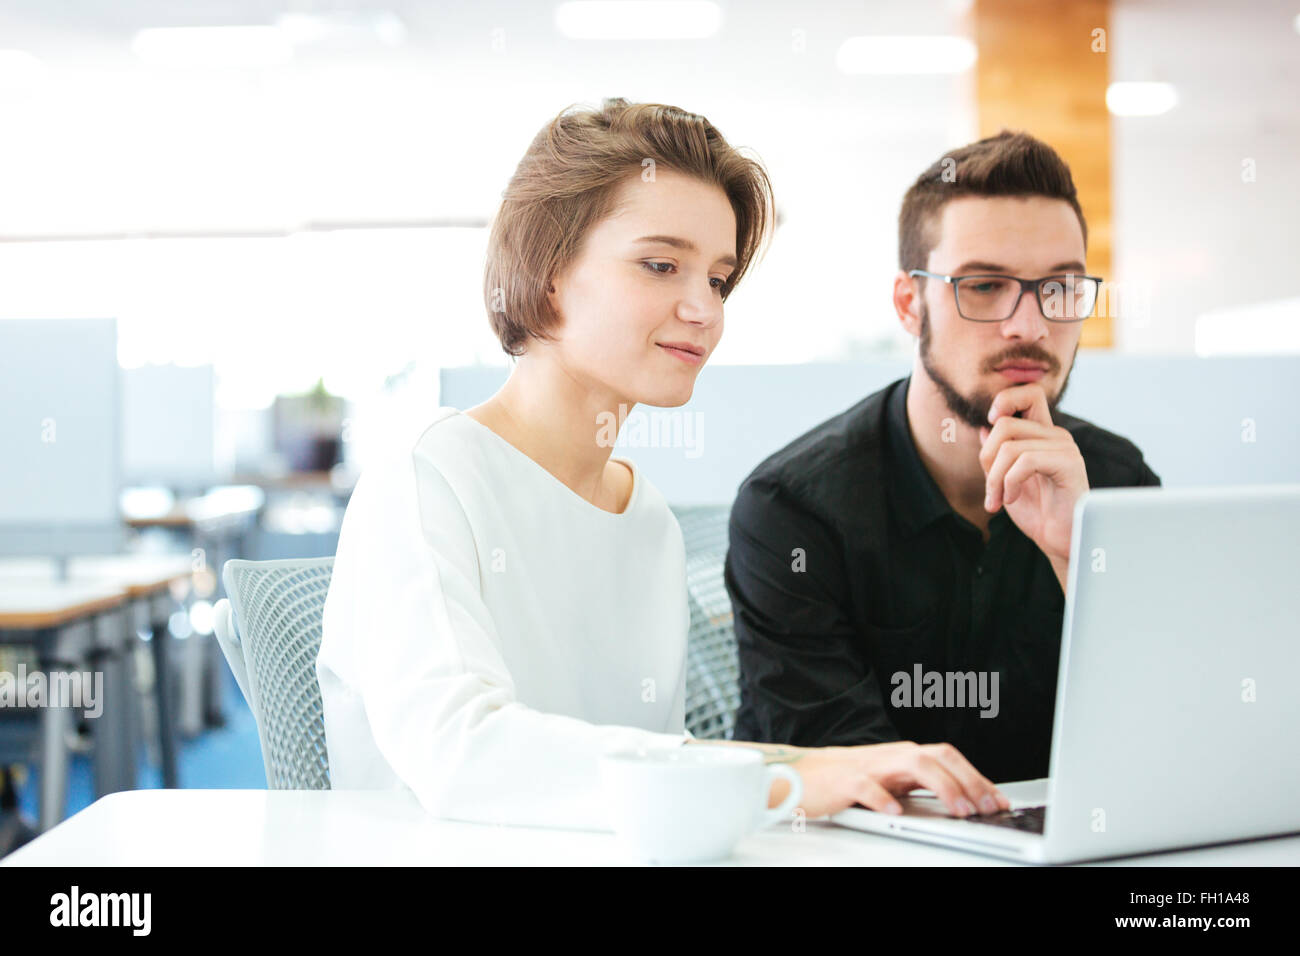 Concentrated young man and woman sitting and discussing new project using laptop in office Stock Photo